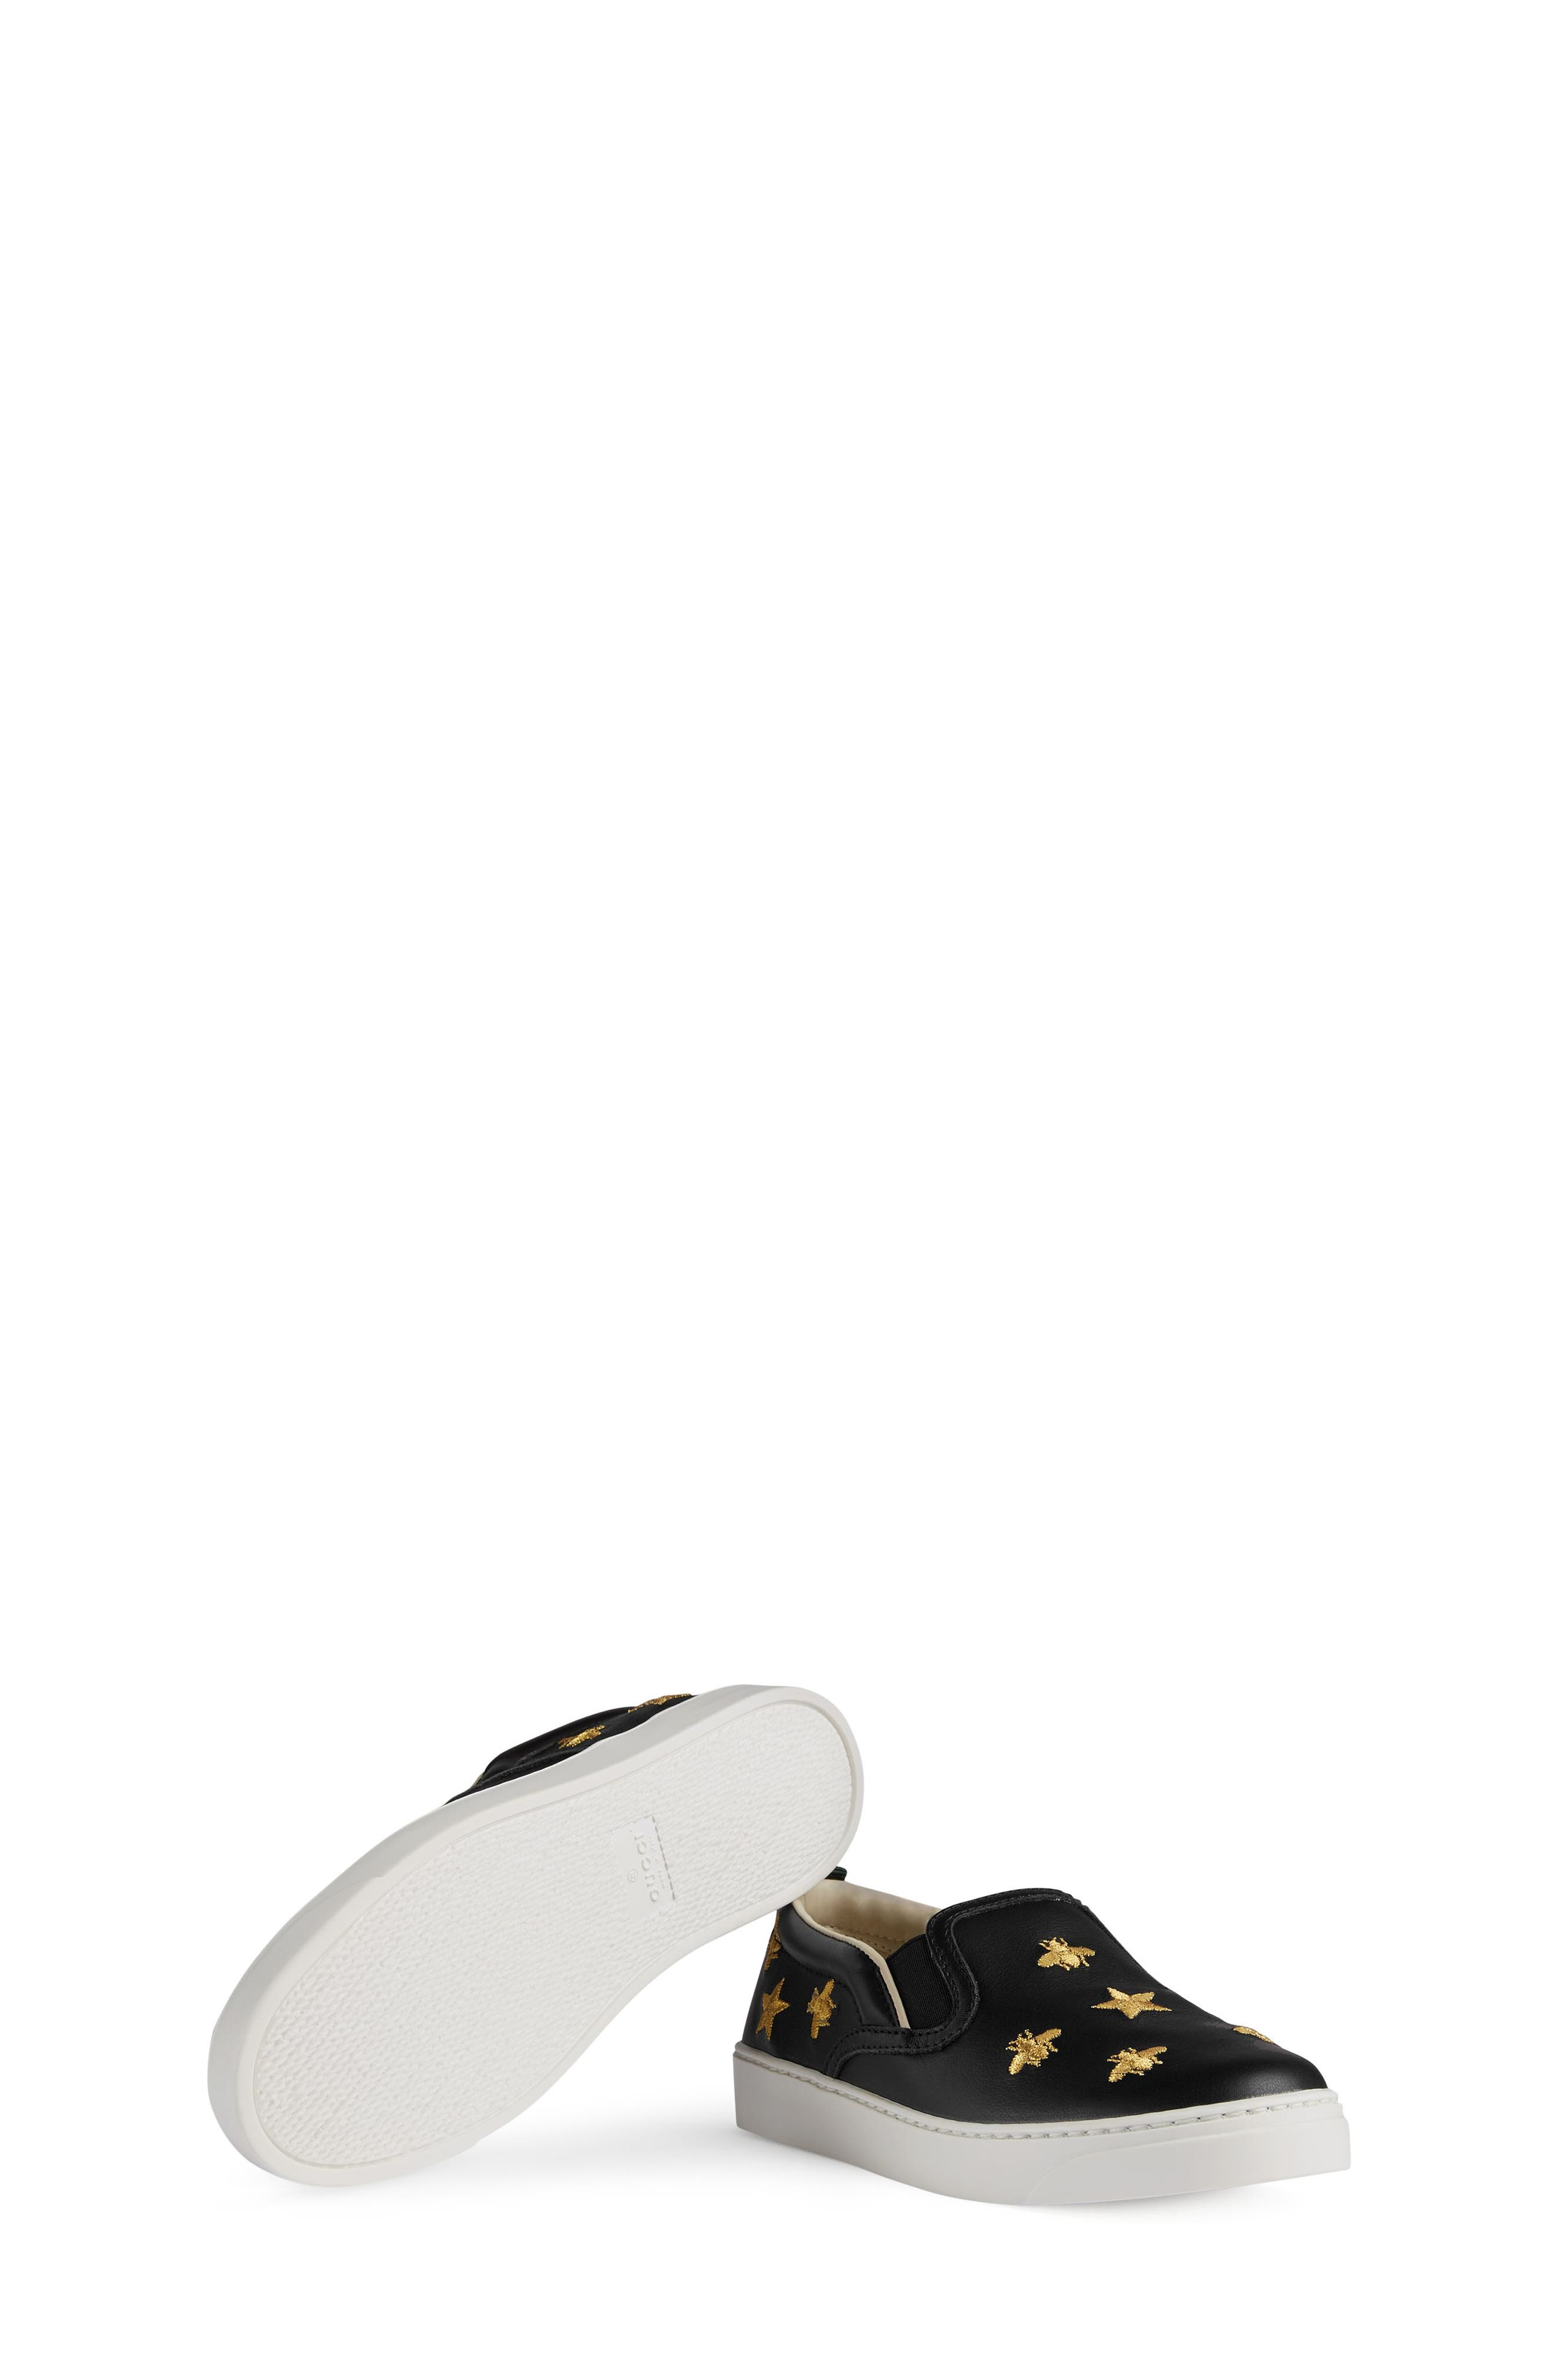 Dublin Bees and Stars Slip-On Sneaker,                             Alternate thumbnail 5, color,                             BLACK/GOLD STARS